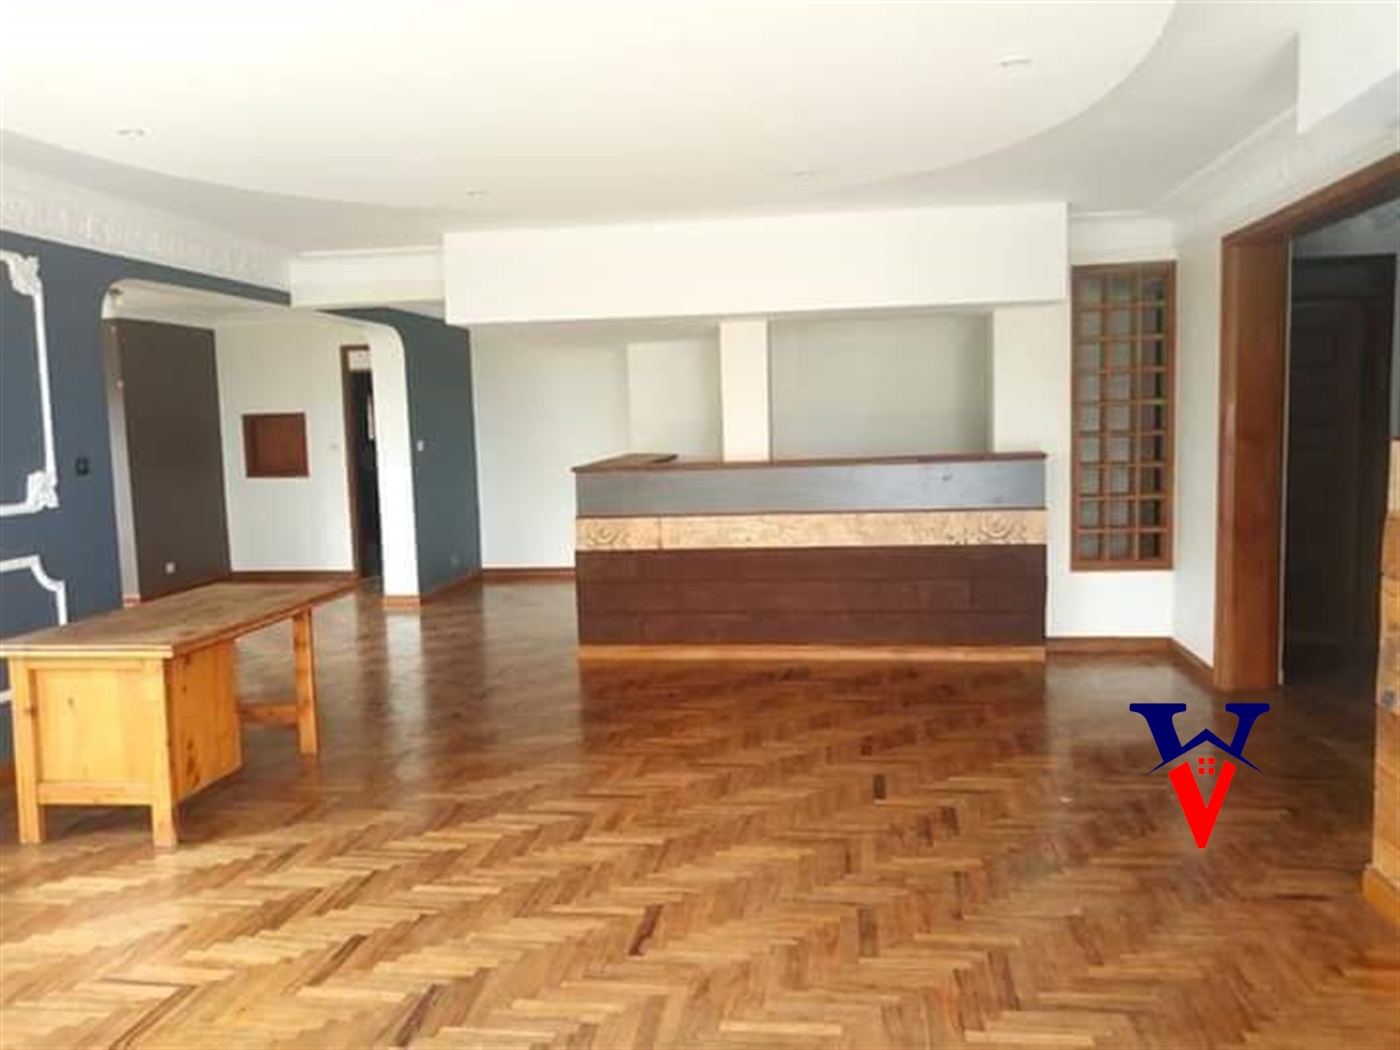 Storyed house for rent in Mutungo Kampala